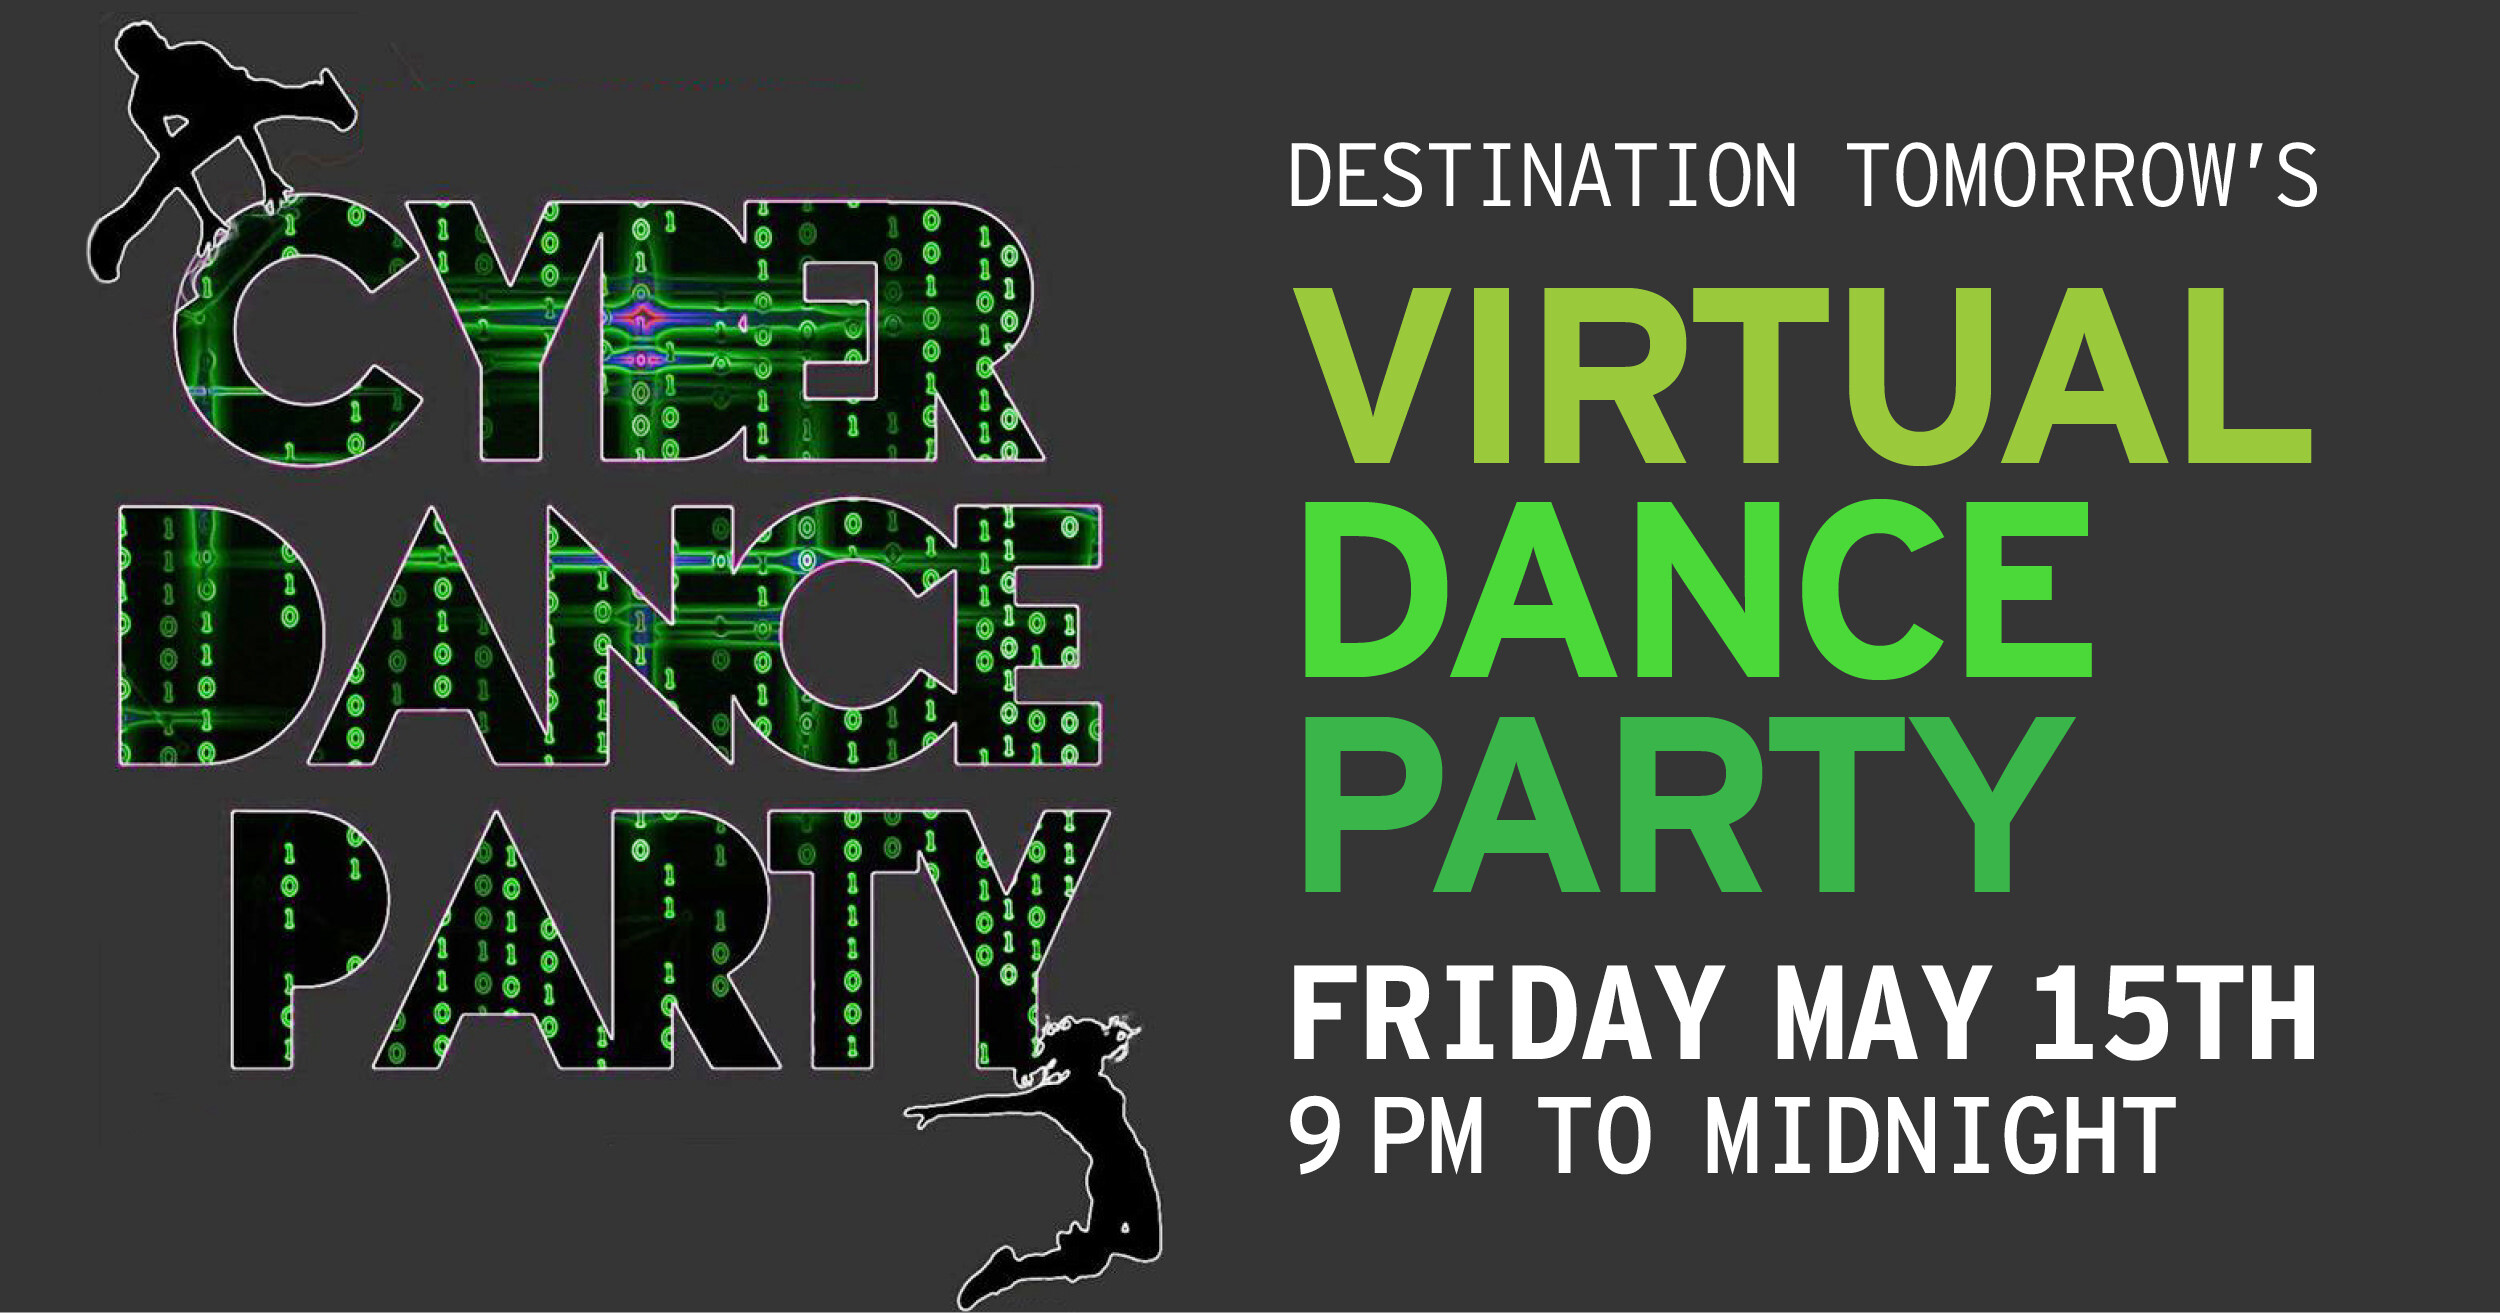 Destination Tomorrow's Virtual Dance Party